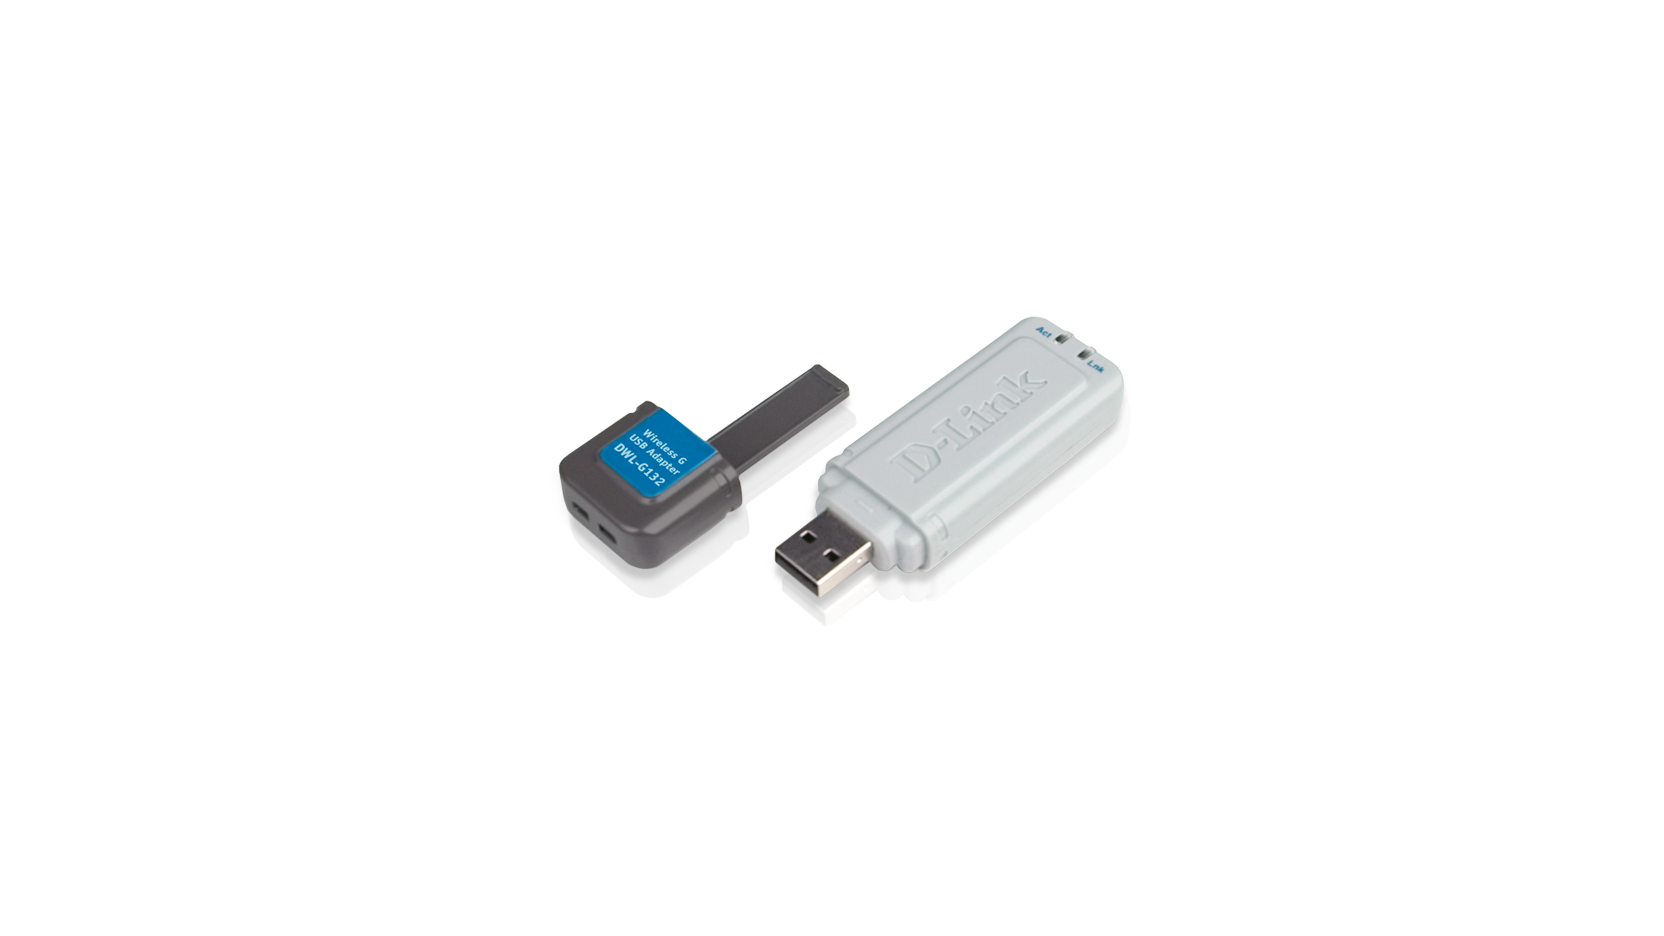 D-LINK WIRELESS ADAPTER DWL-G132 64BIT DRIVER